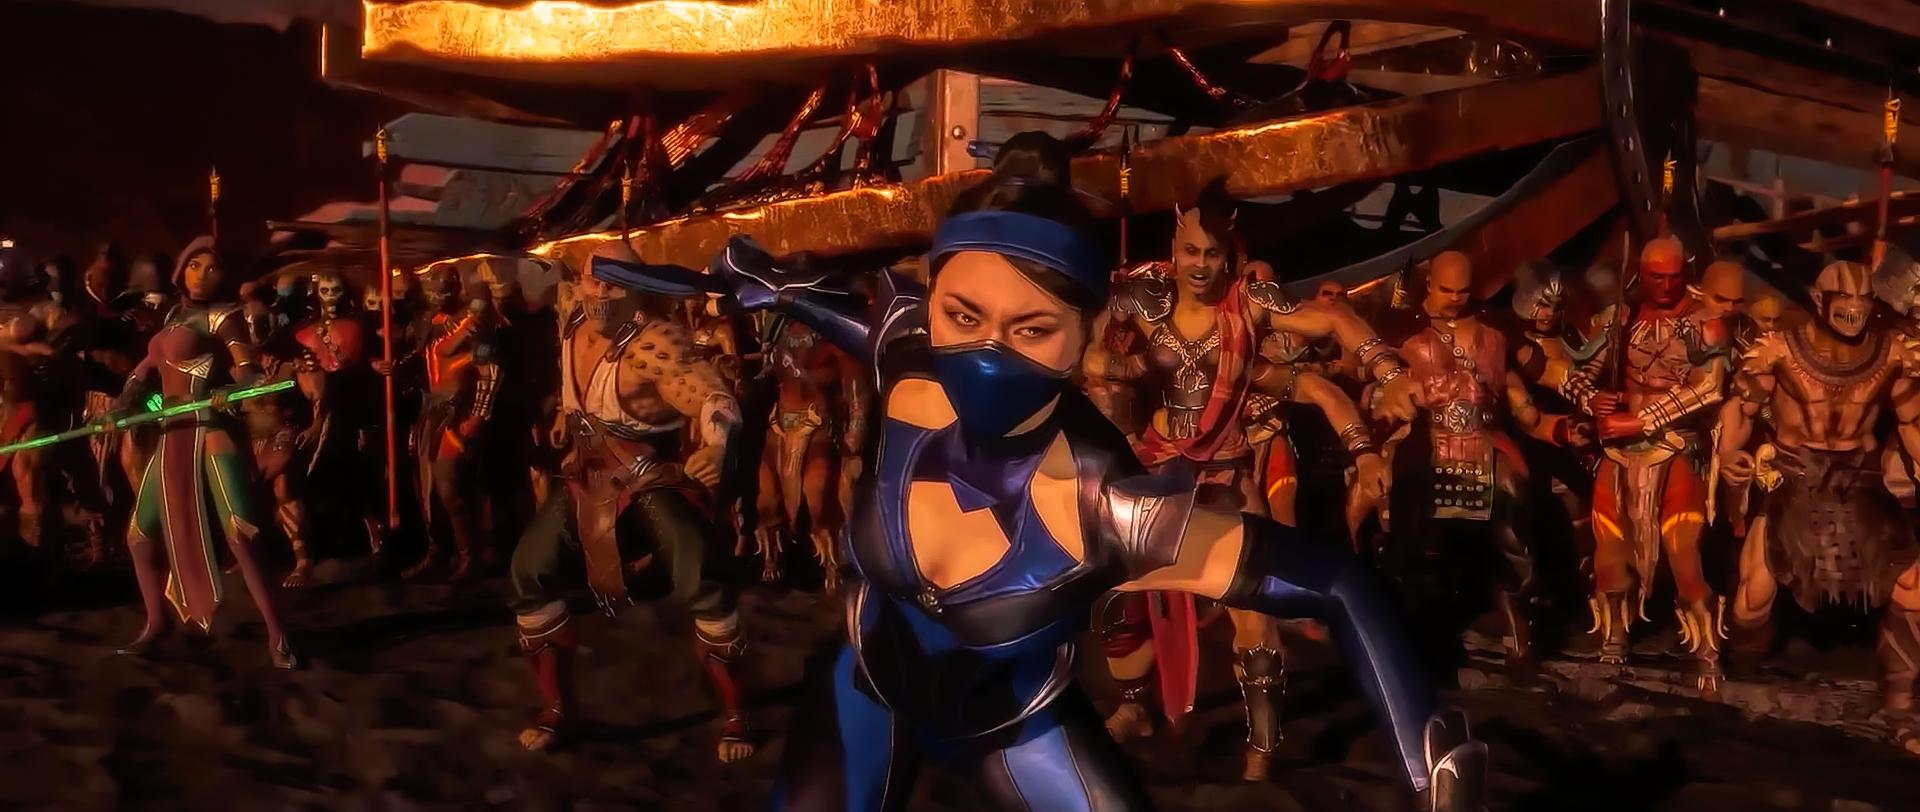 Kitana, Sheeva, Baraka and Jade (MK11)